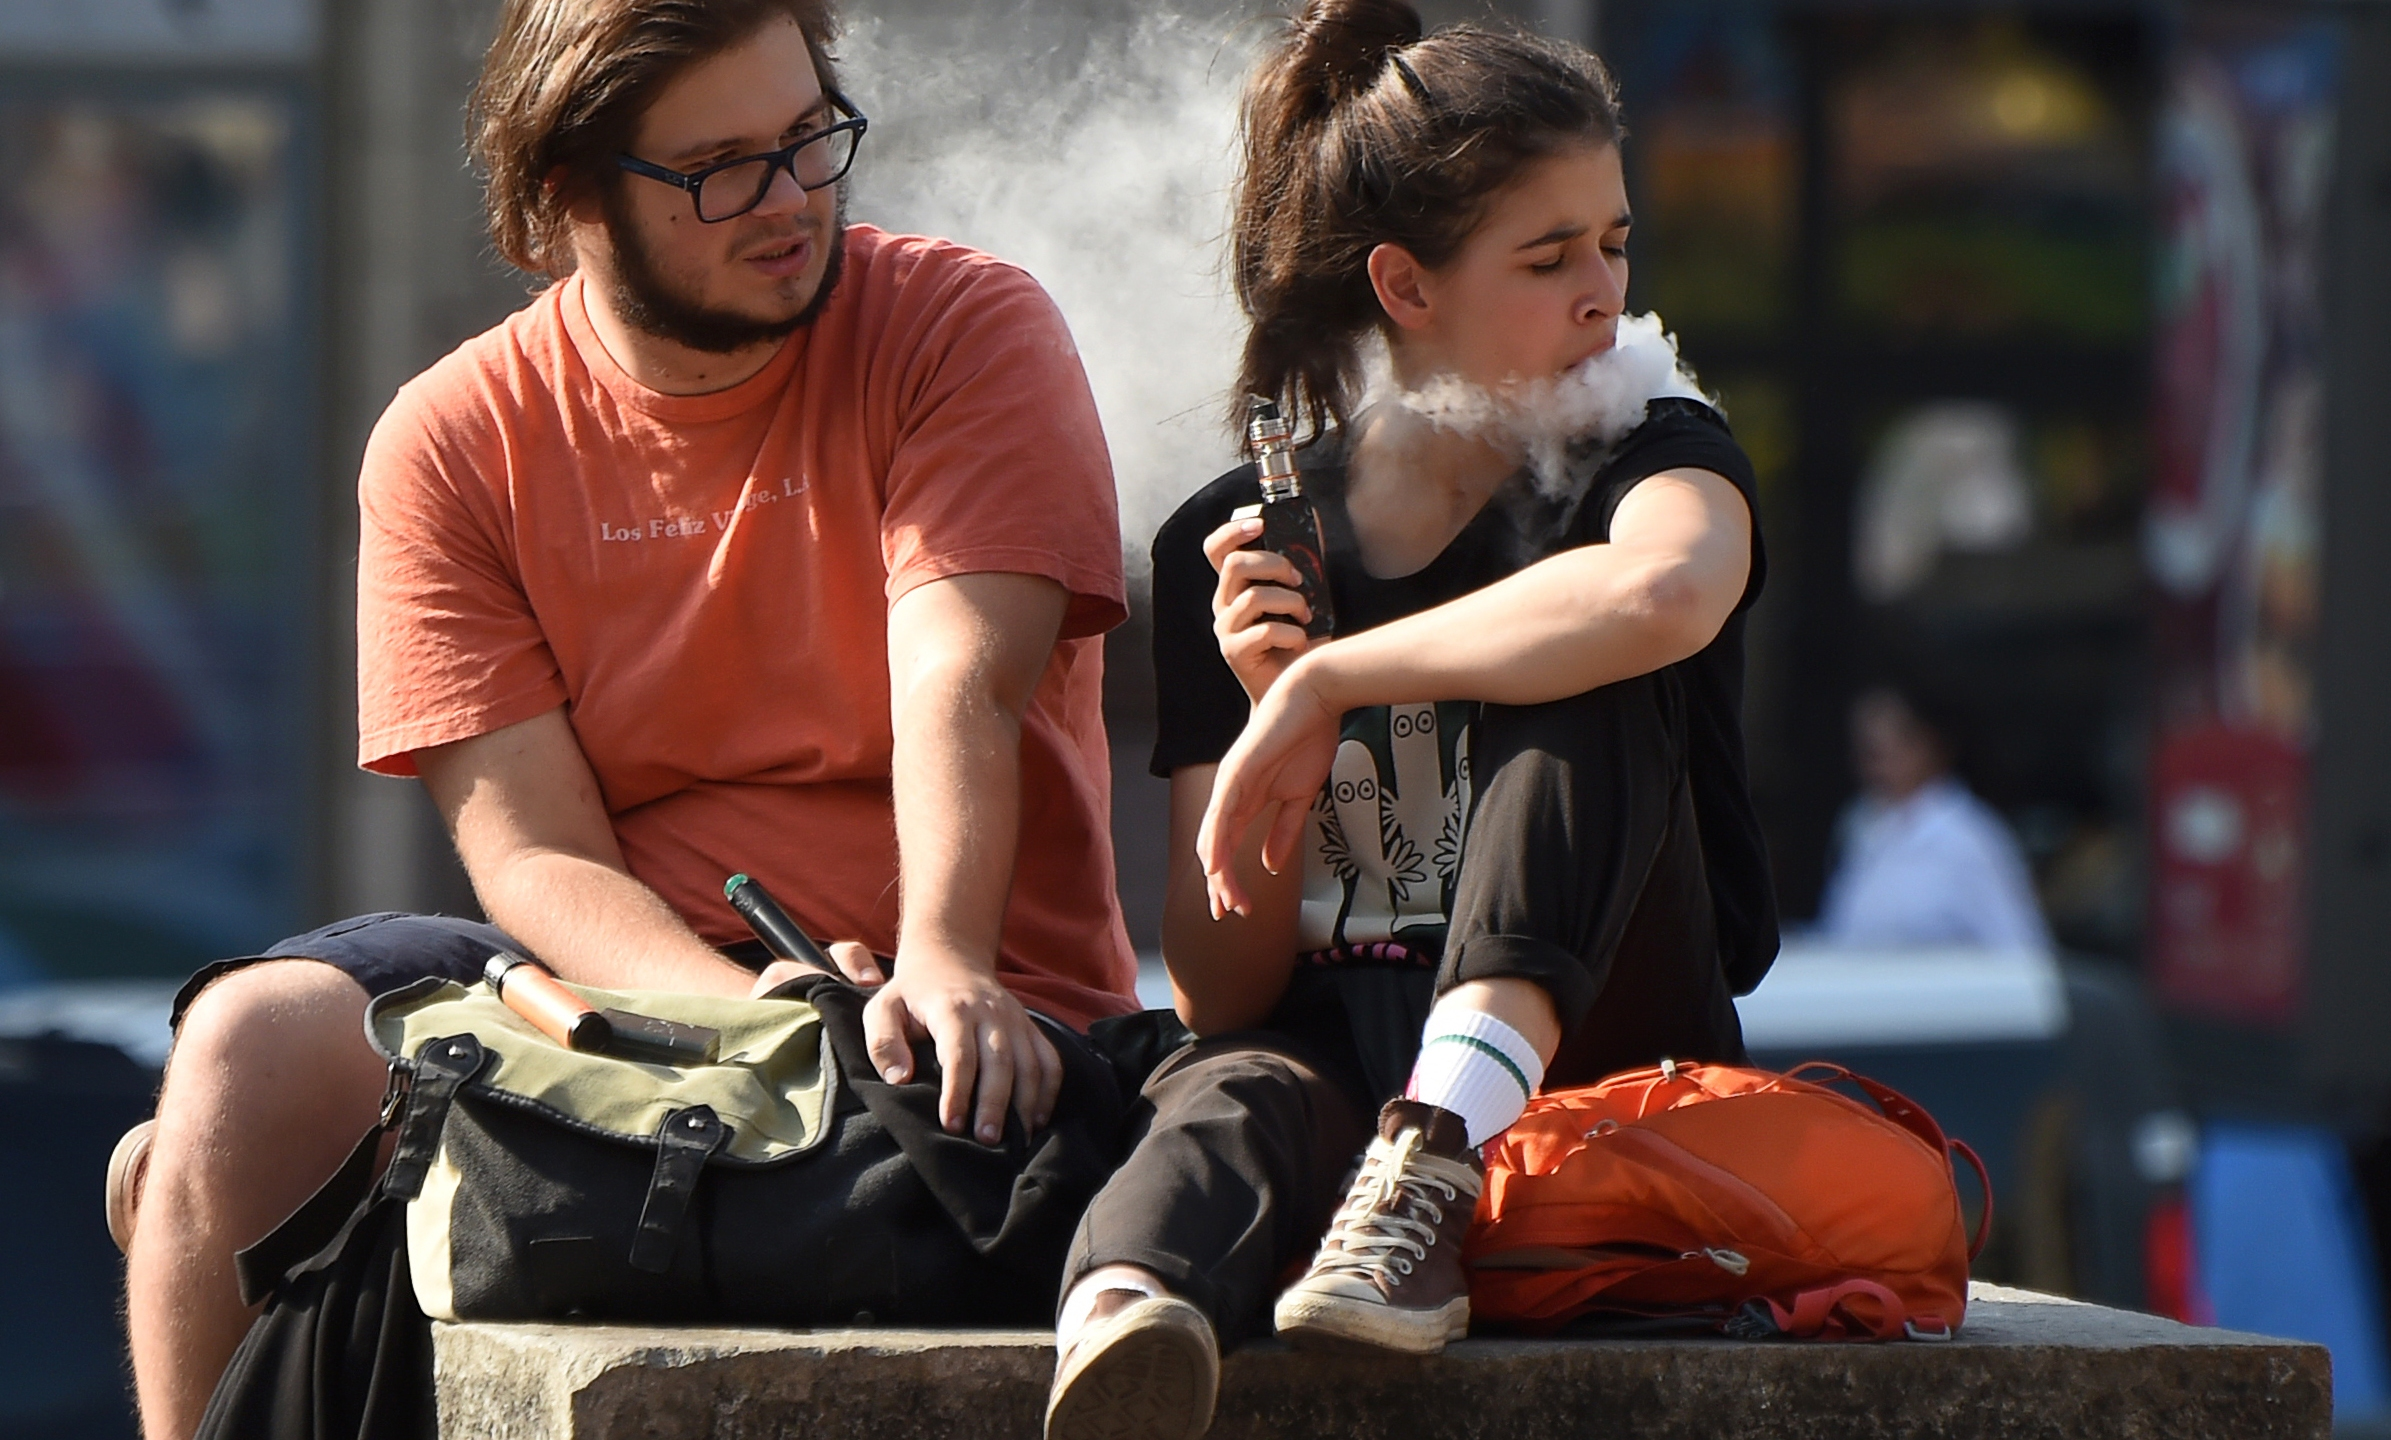 A couple smokes electronic cigarettes (e-cigarettes) in central Kiev on a warm autumn day on Sept. 13, 2019. (Credit: Sergei SUPINSKY/AFP/Getty Images)